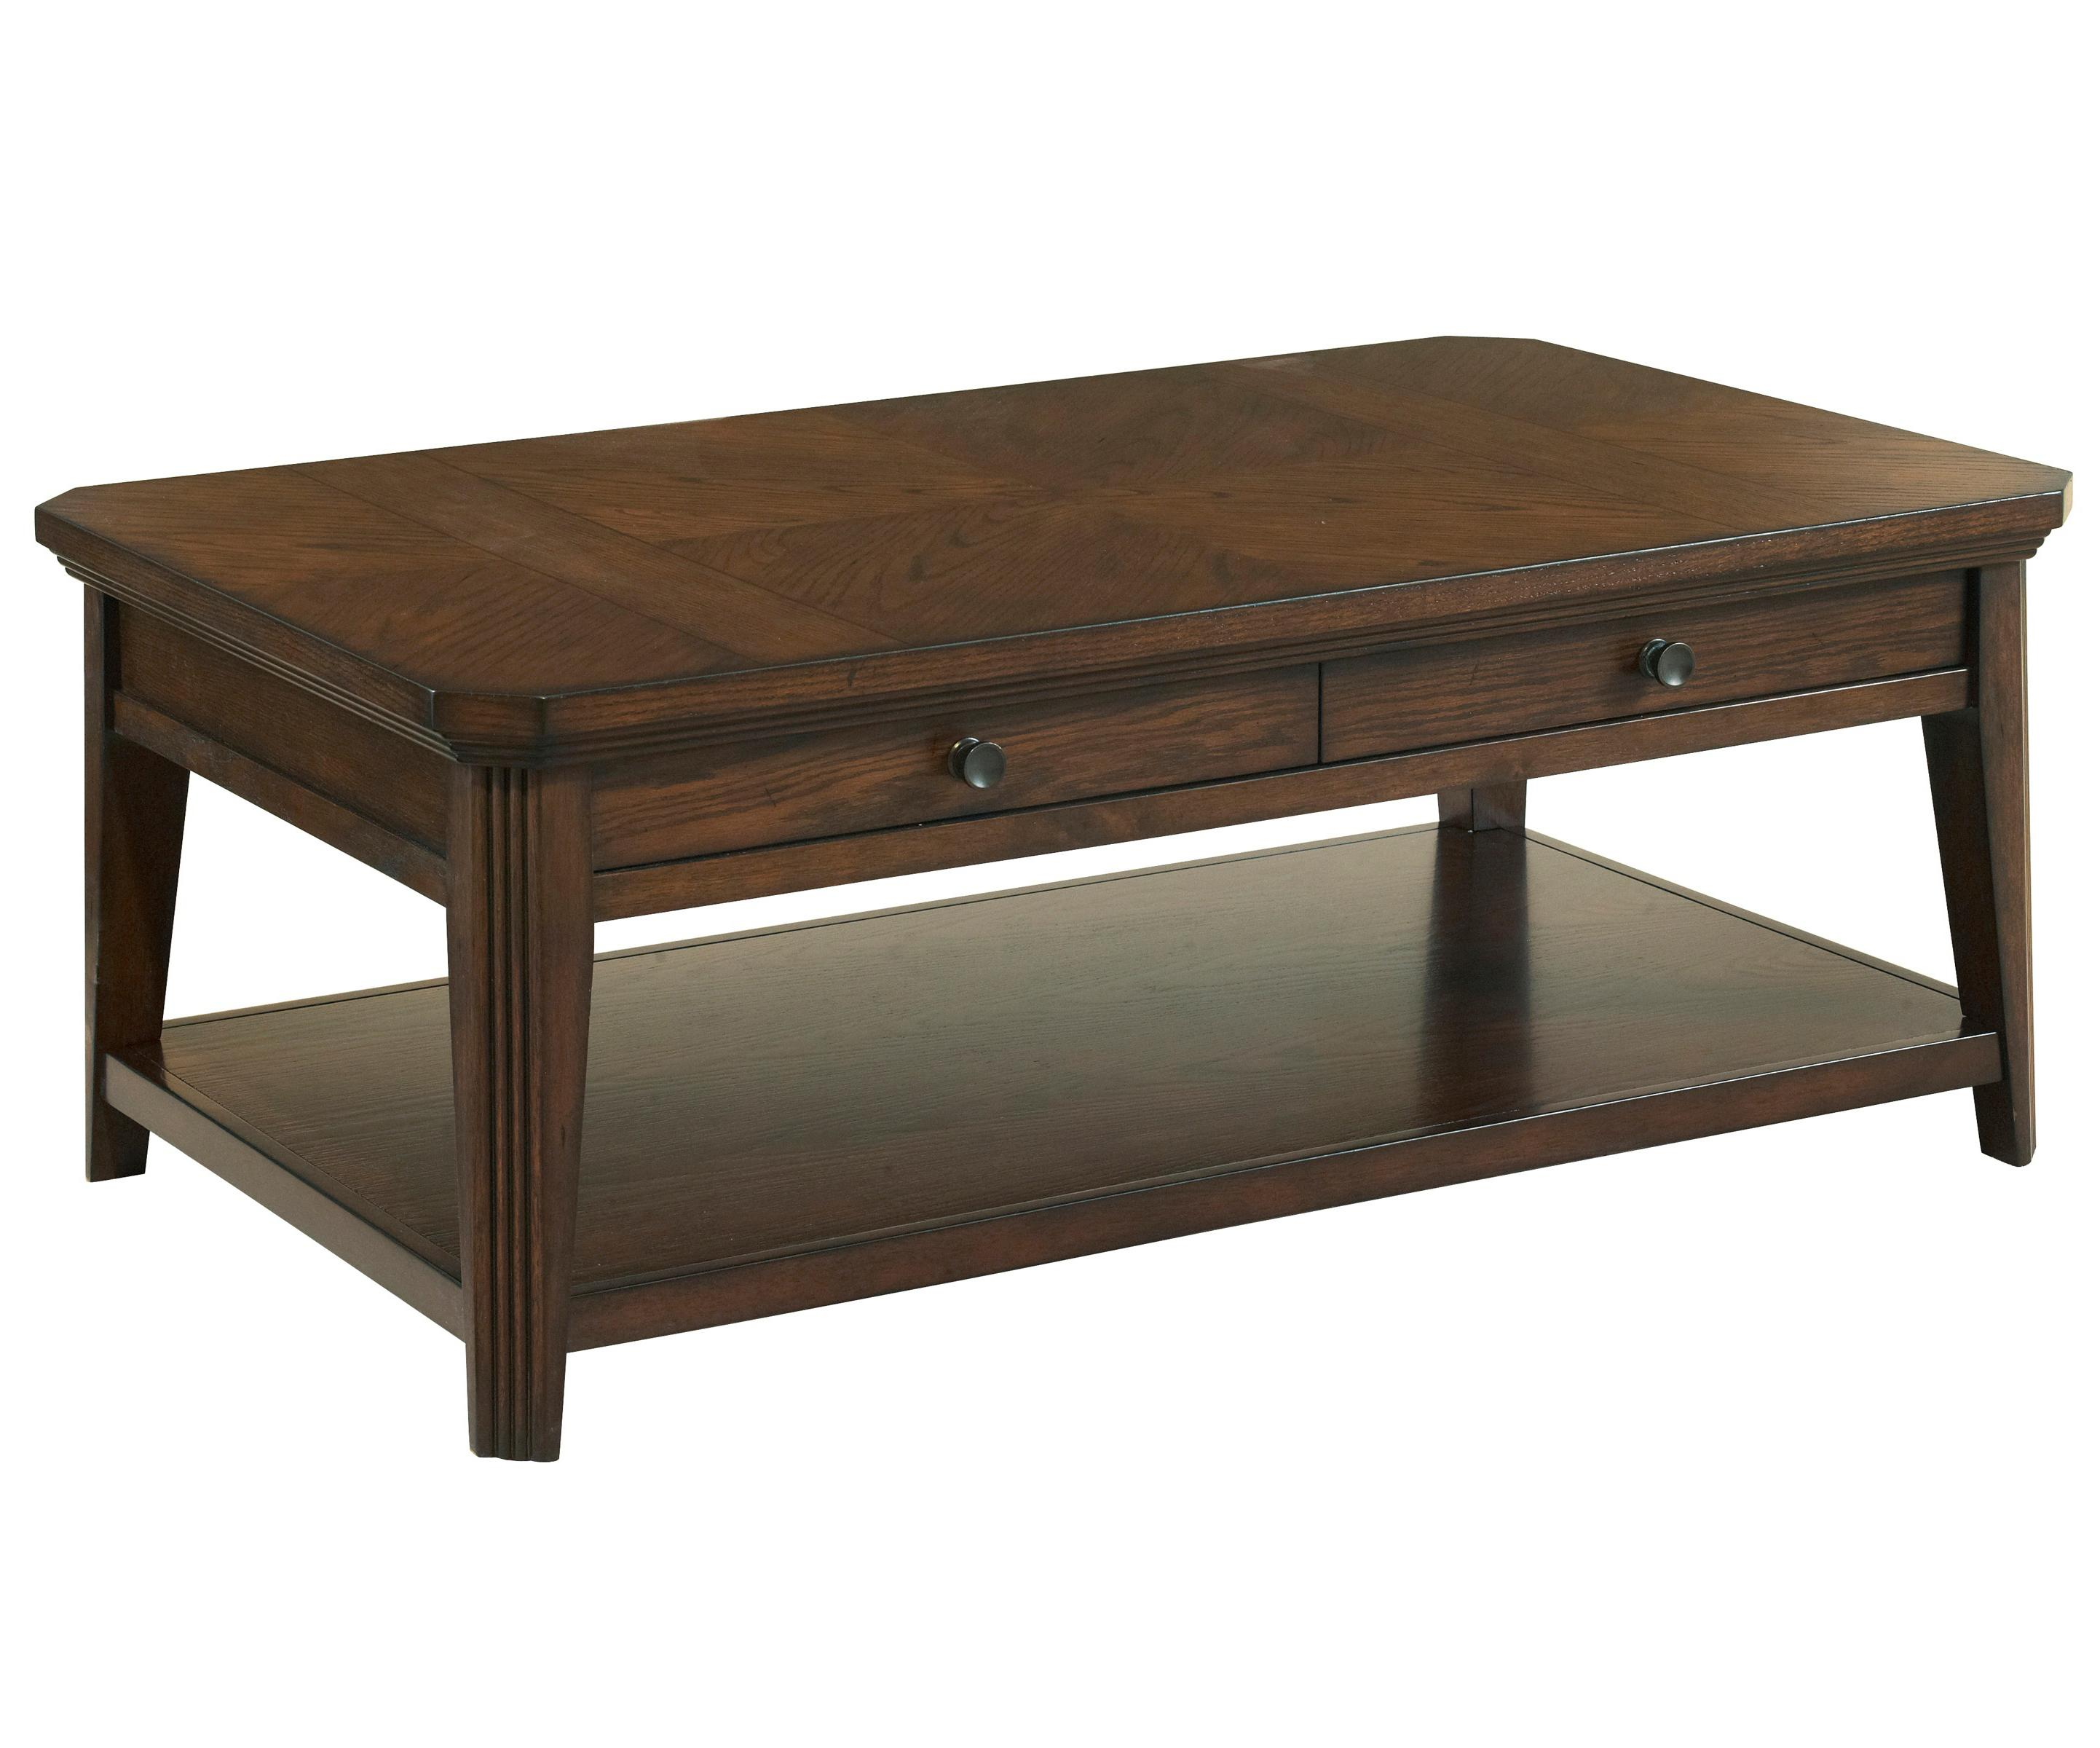 broyhill furniture estes park storage cocktail table with shelf products color coffee and end tables turned into dog cat ashley promo code unfinished philadelphia showcase carpet